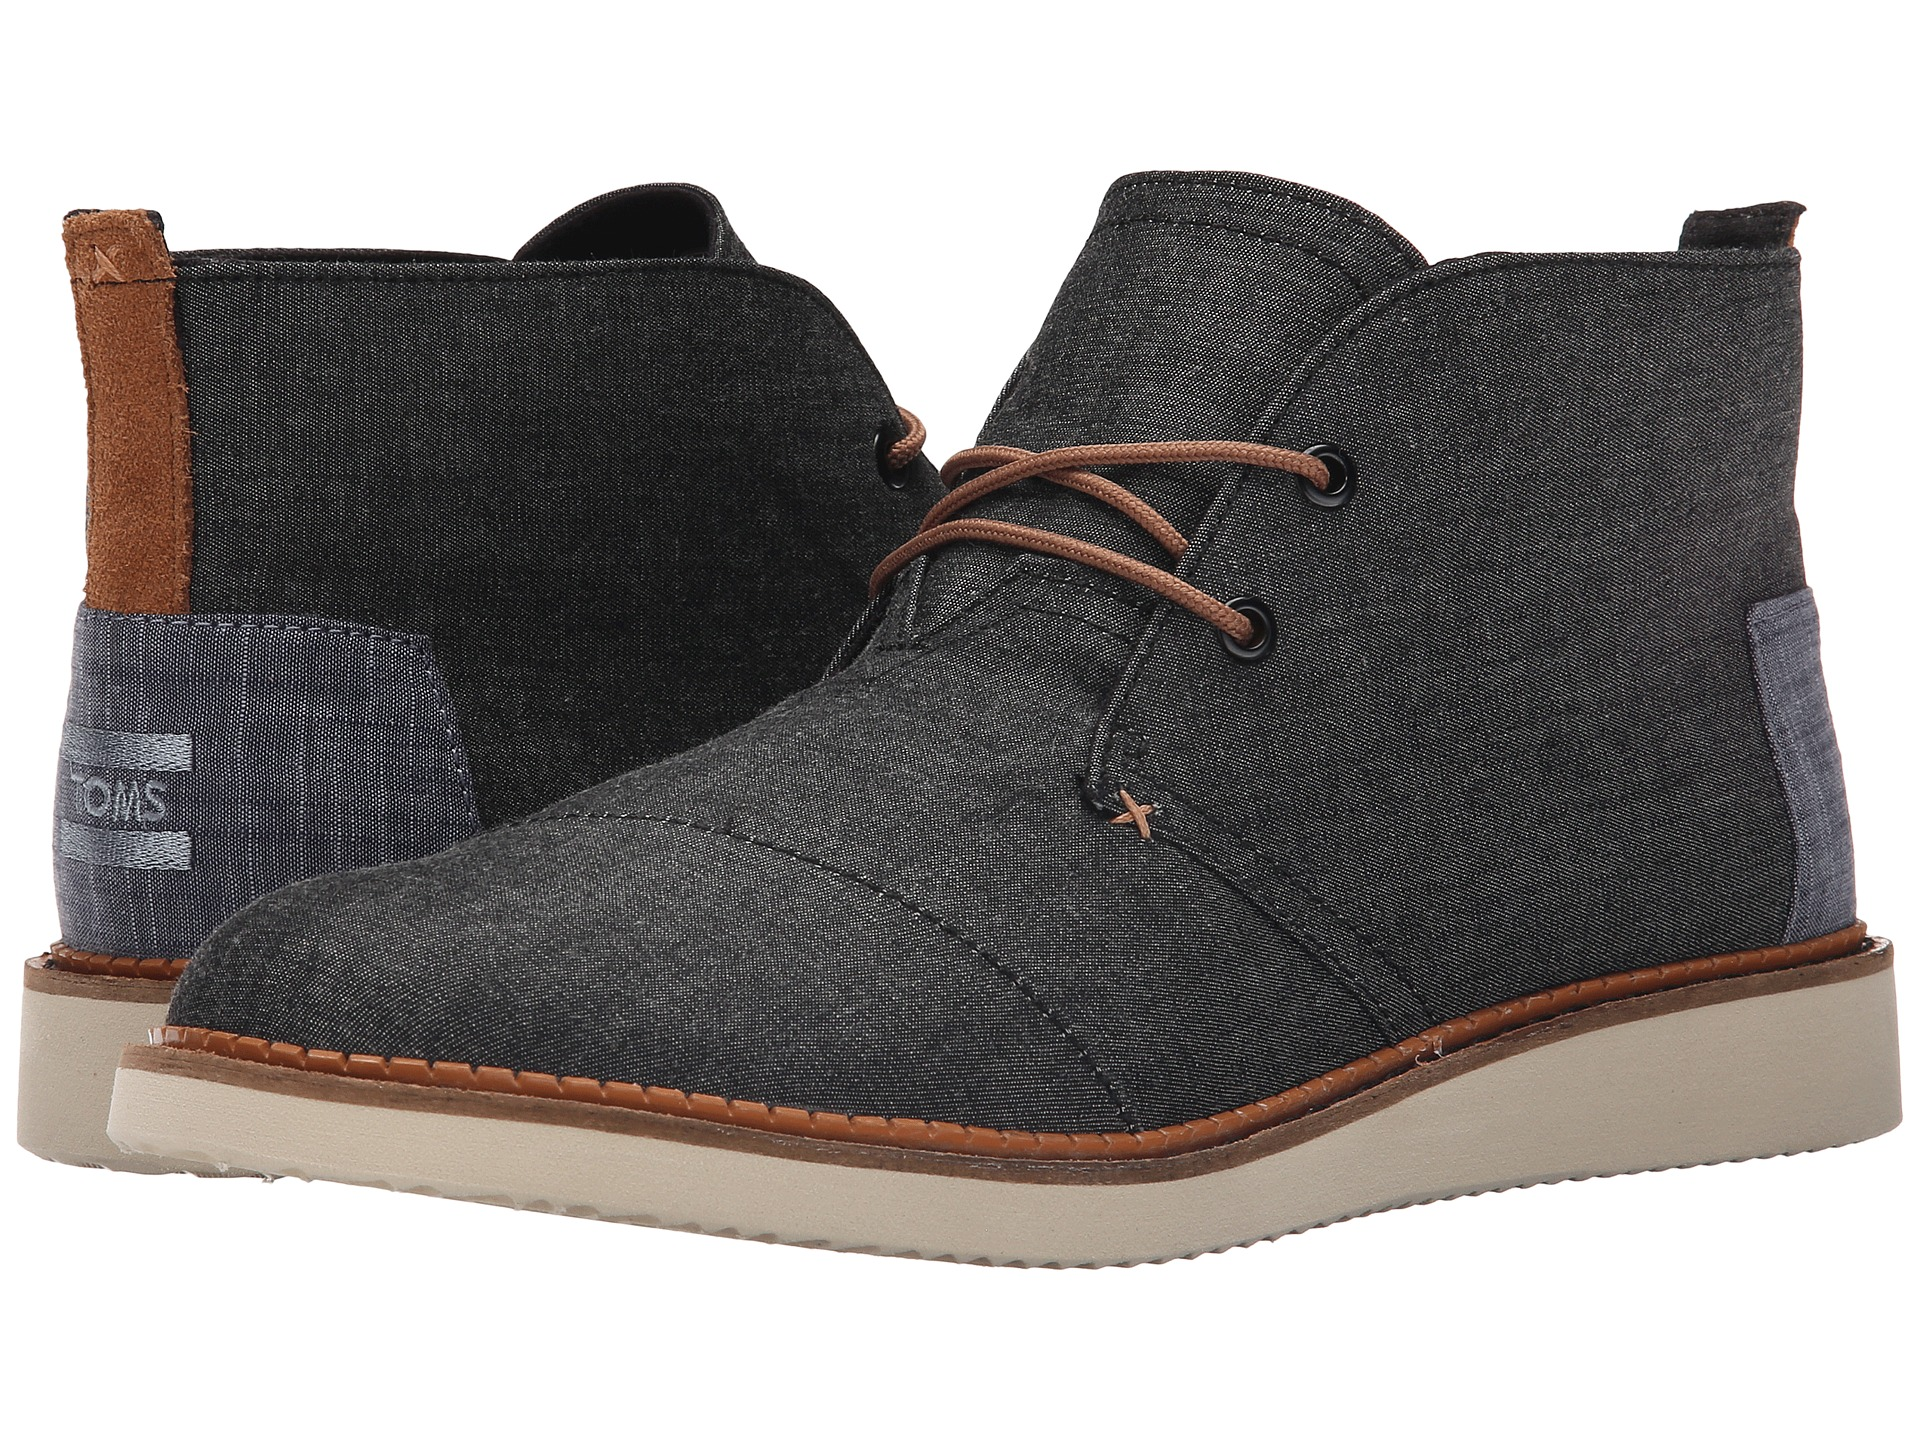 Boots, Men | Shipped Free at Zappos